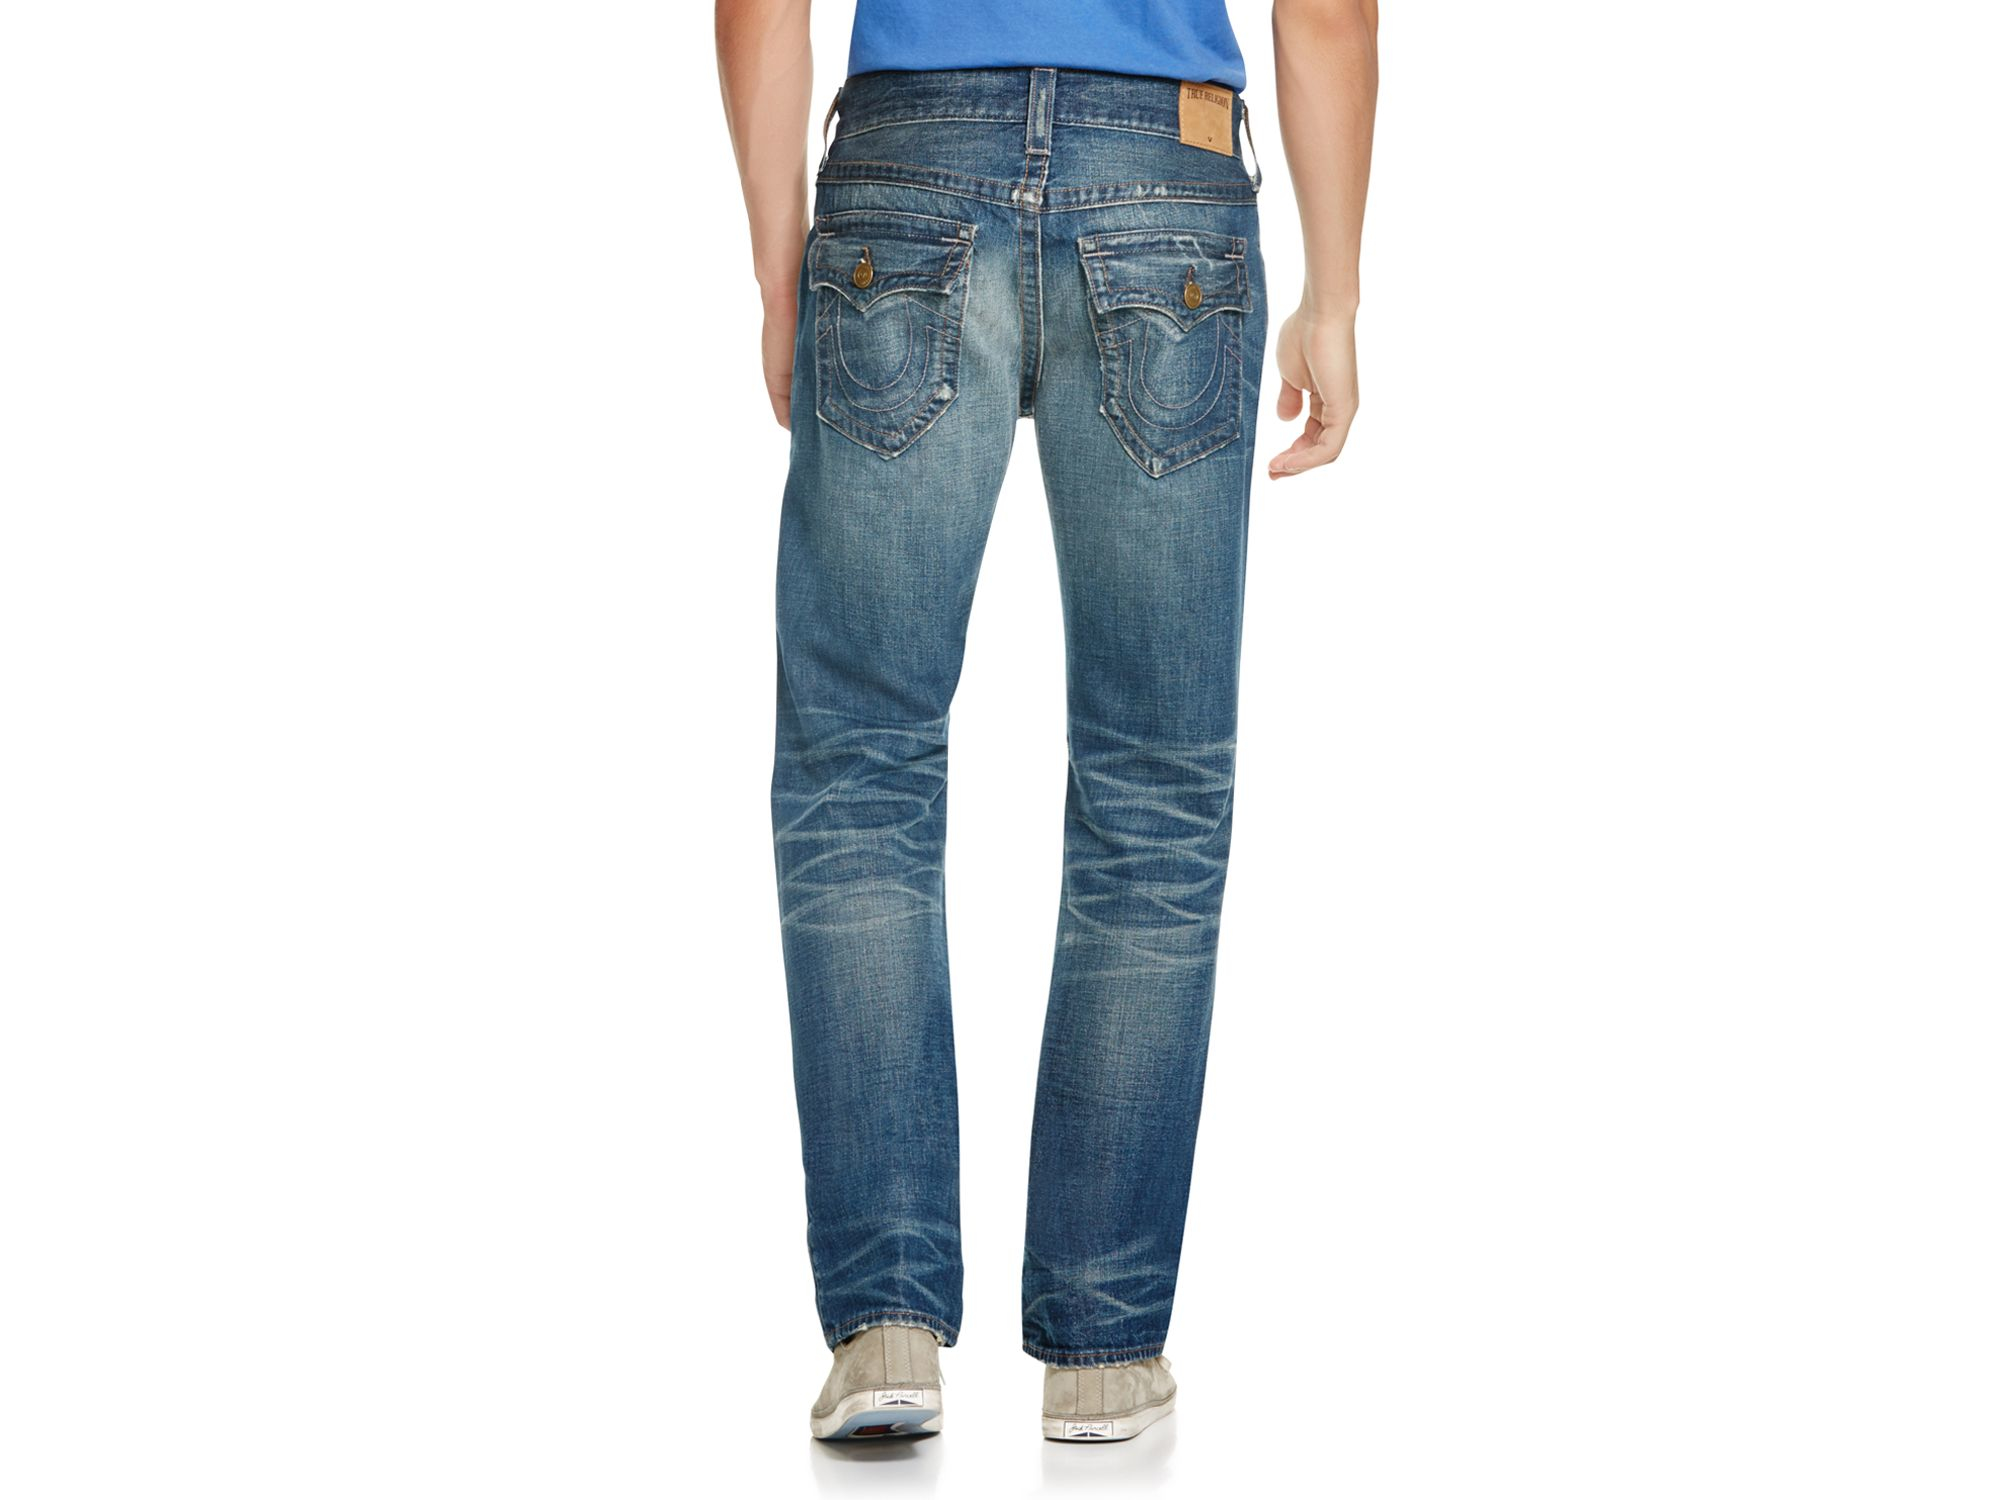 True Religion Ricky Relaxed Fit Jeans In Rough in Blue for Men